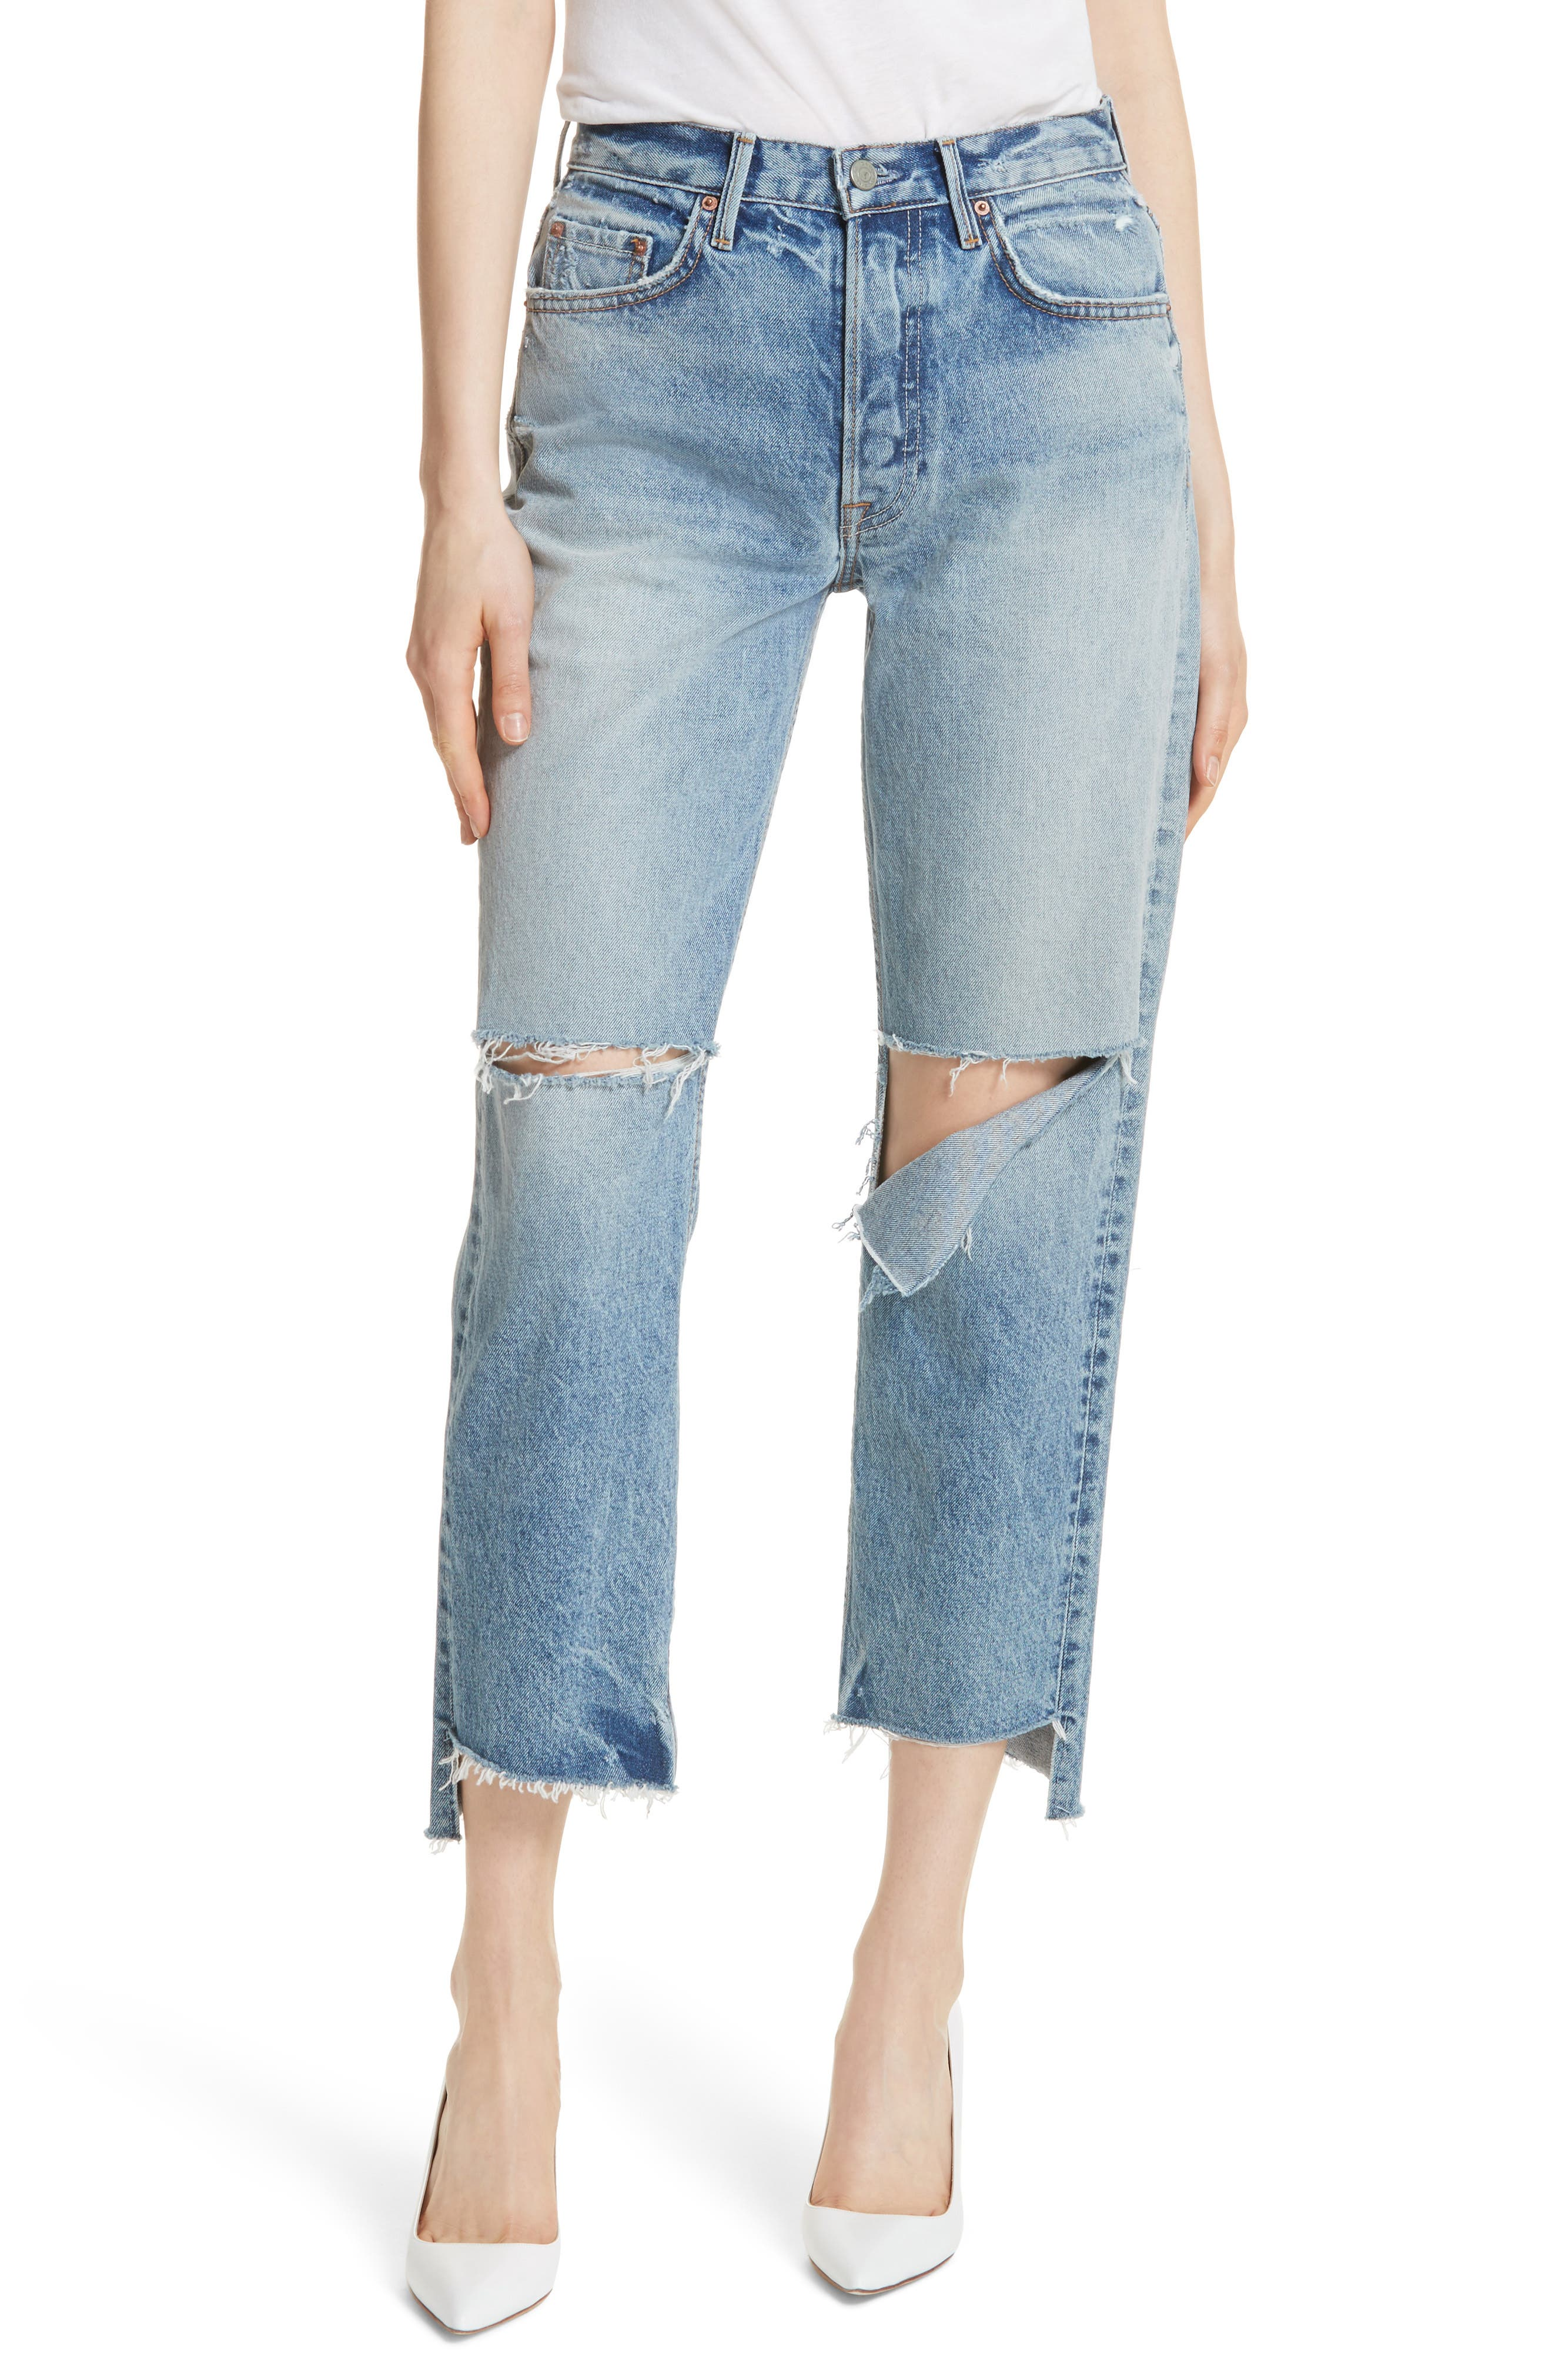 Helena Ripped Rigid High Waist Straight Jeans,                             Main thumbnail 1, color,                             470